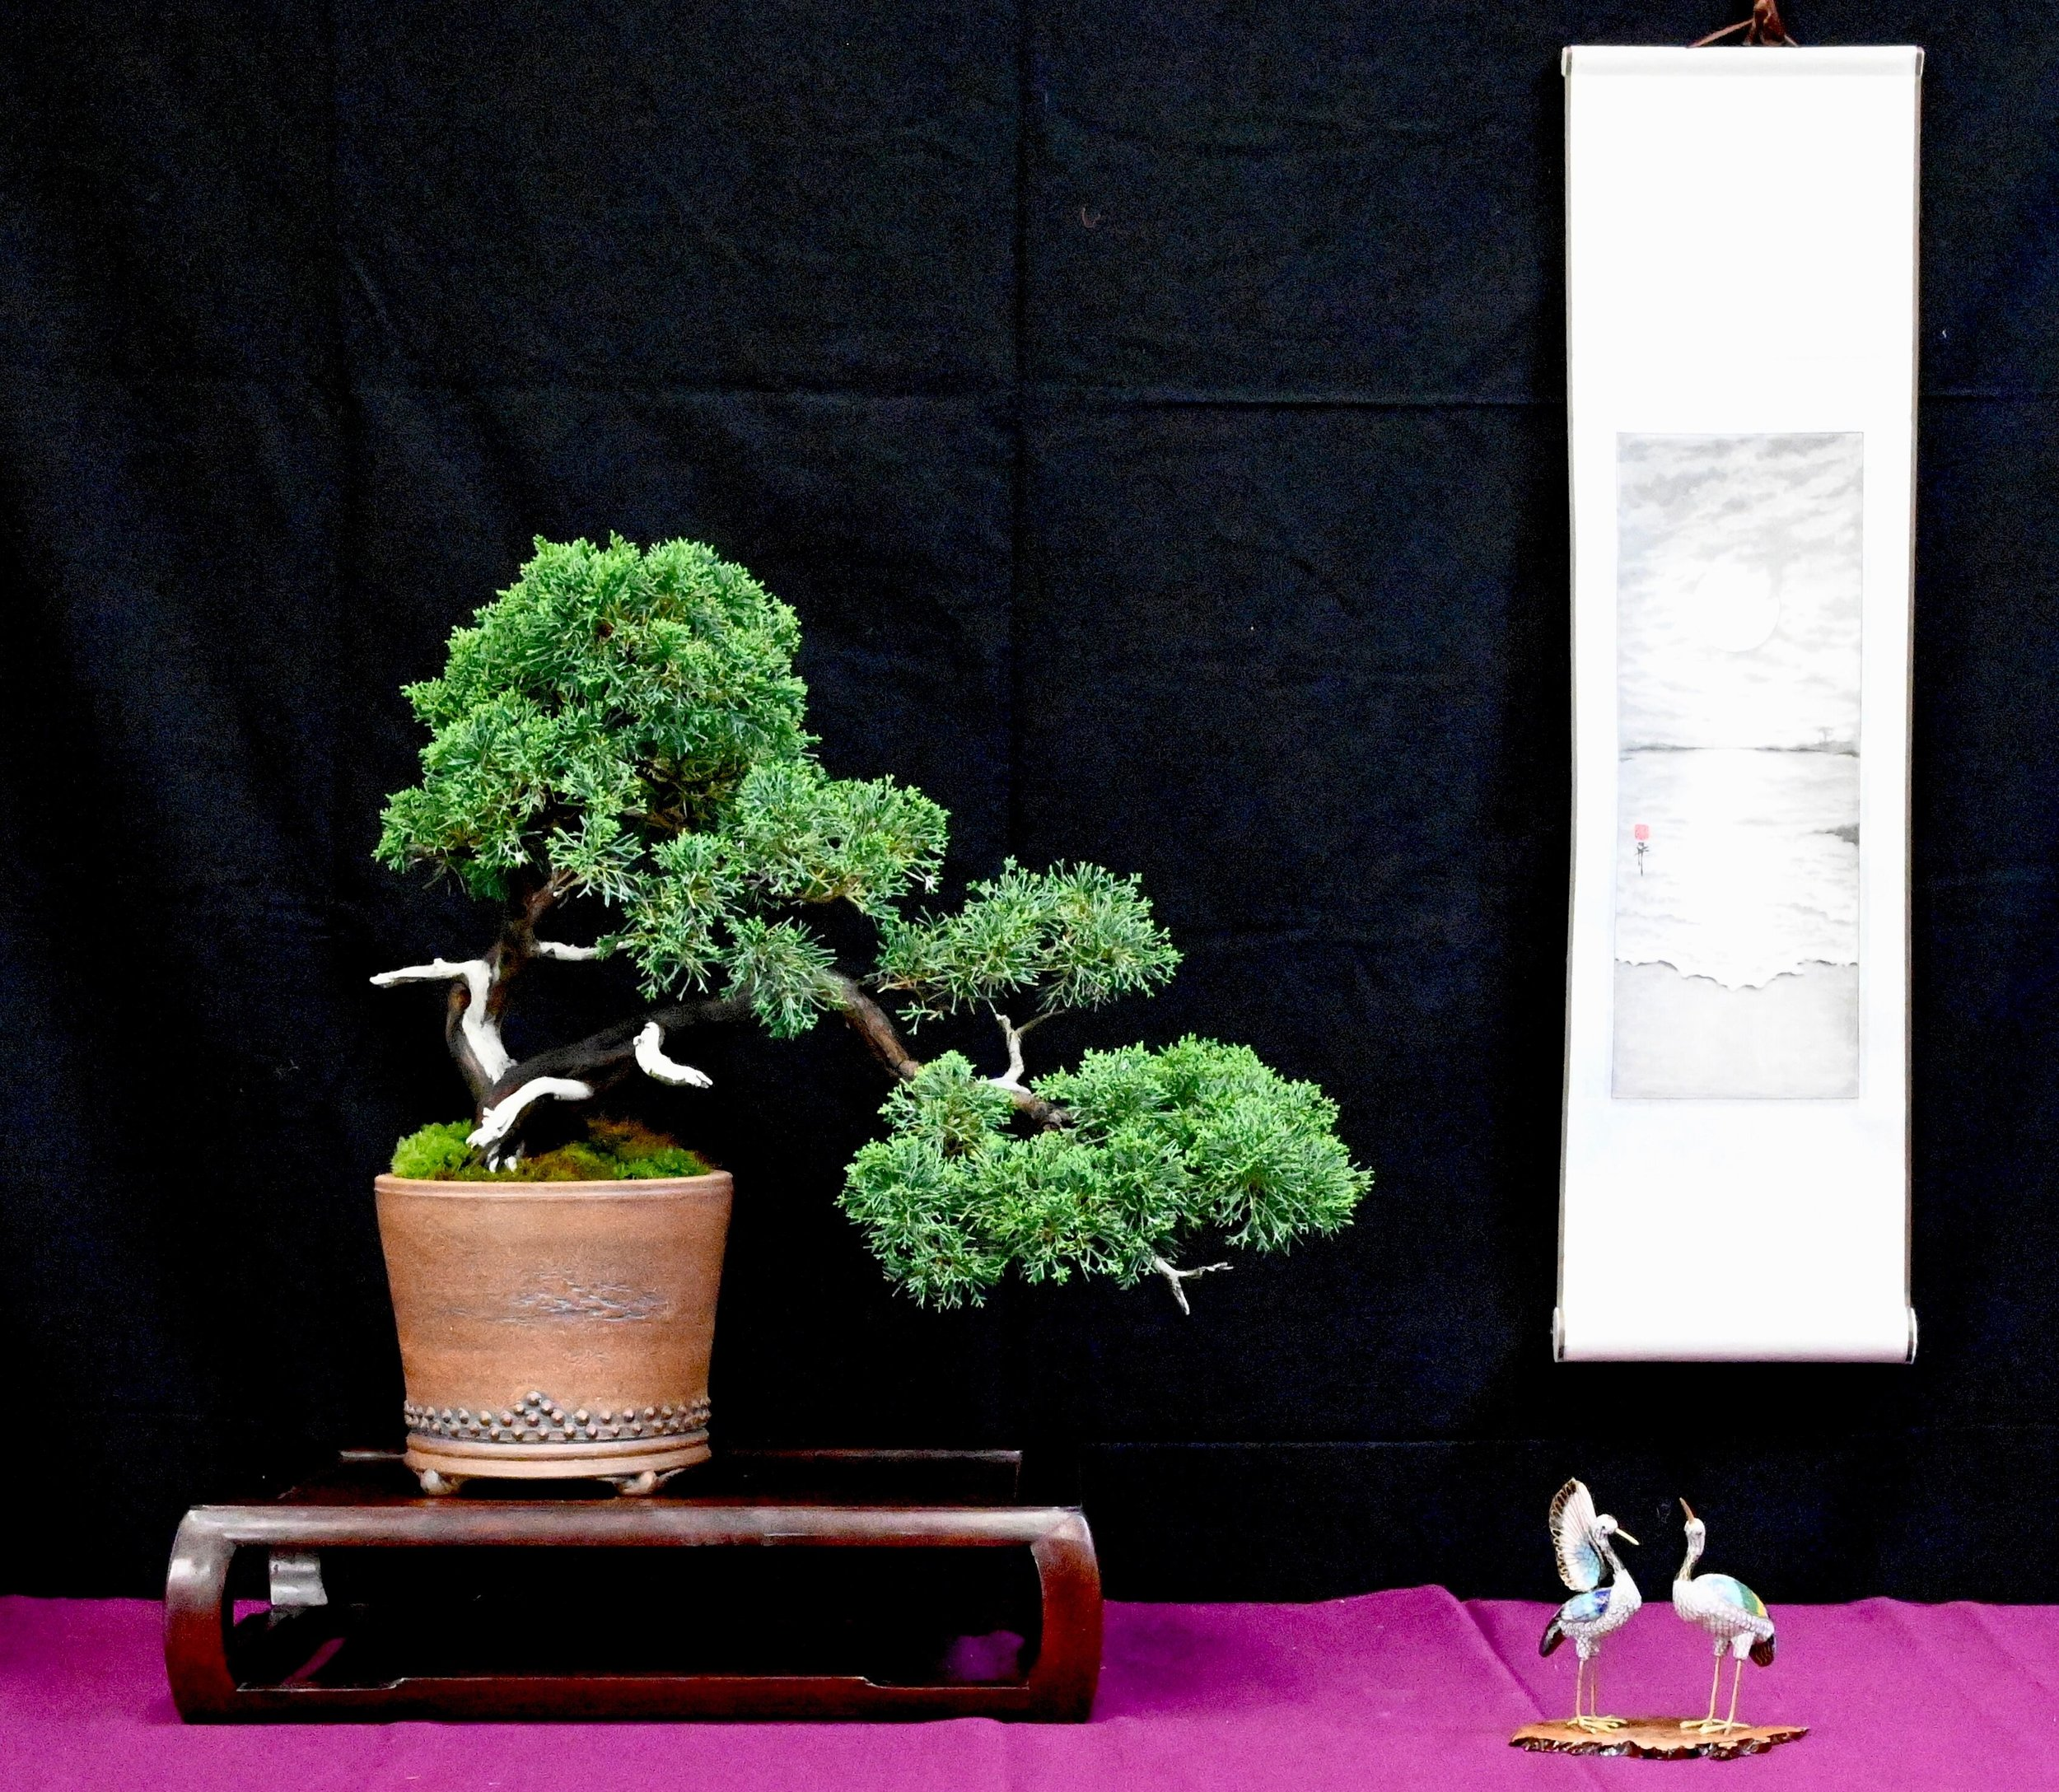 bonsai exhibit 4.jpeg